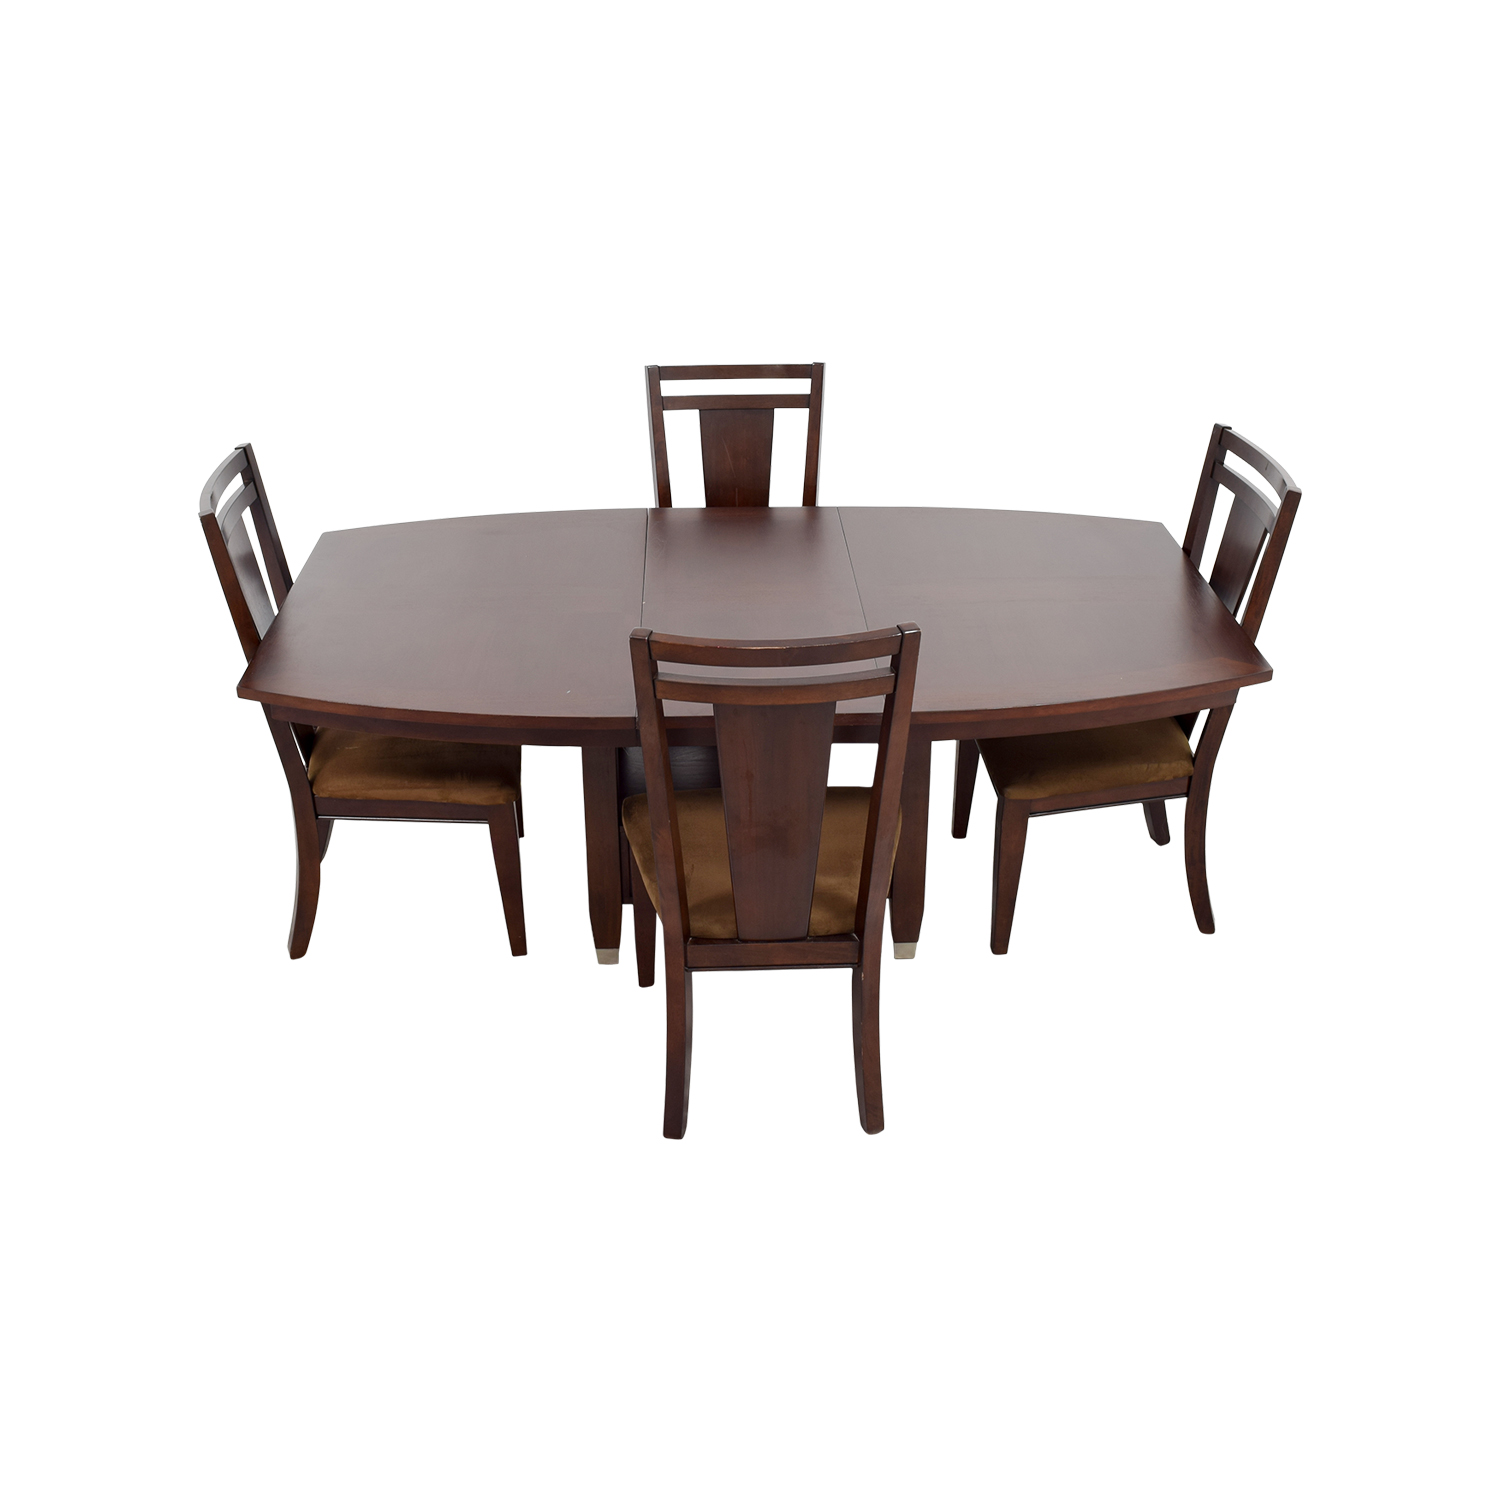 Pictures Of Dining Tables 78 Off Broyhill Broyhill Wood Dining Table Set Tables